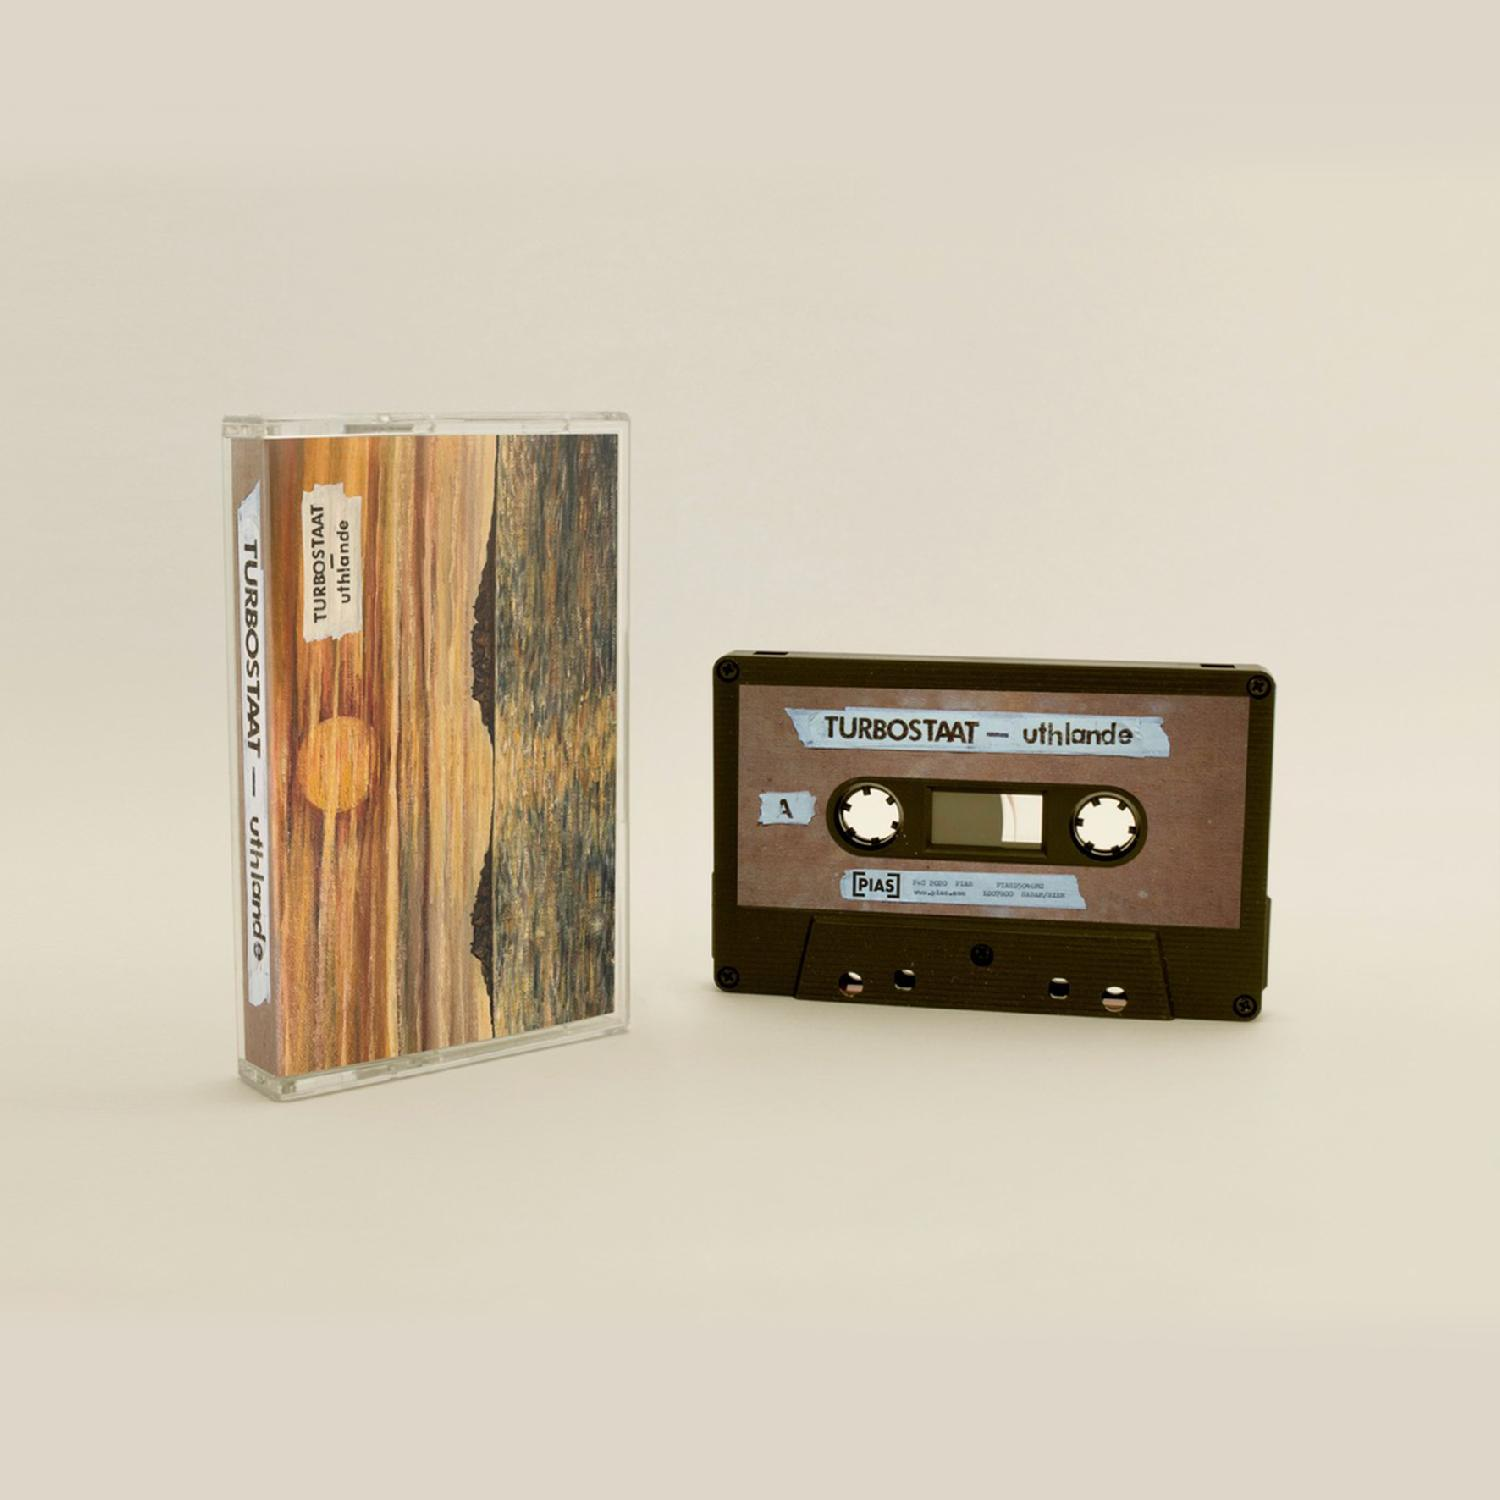 Turbostaat Uthlande MC audio cassette